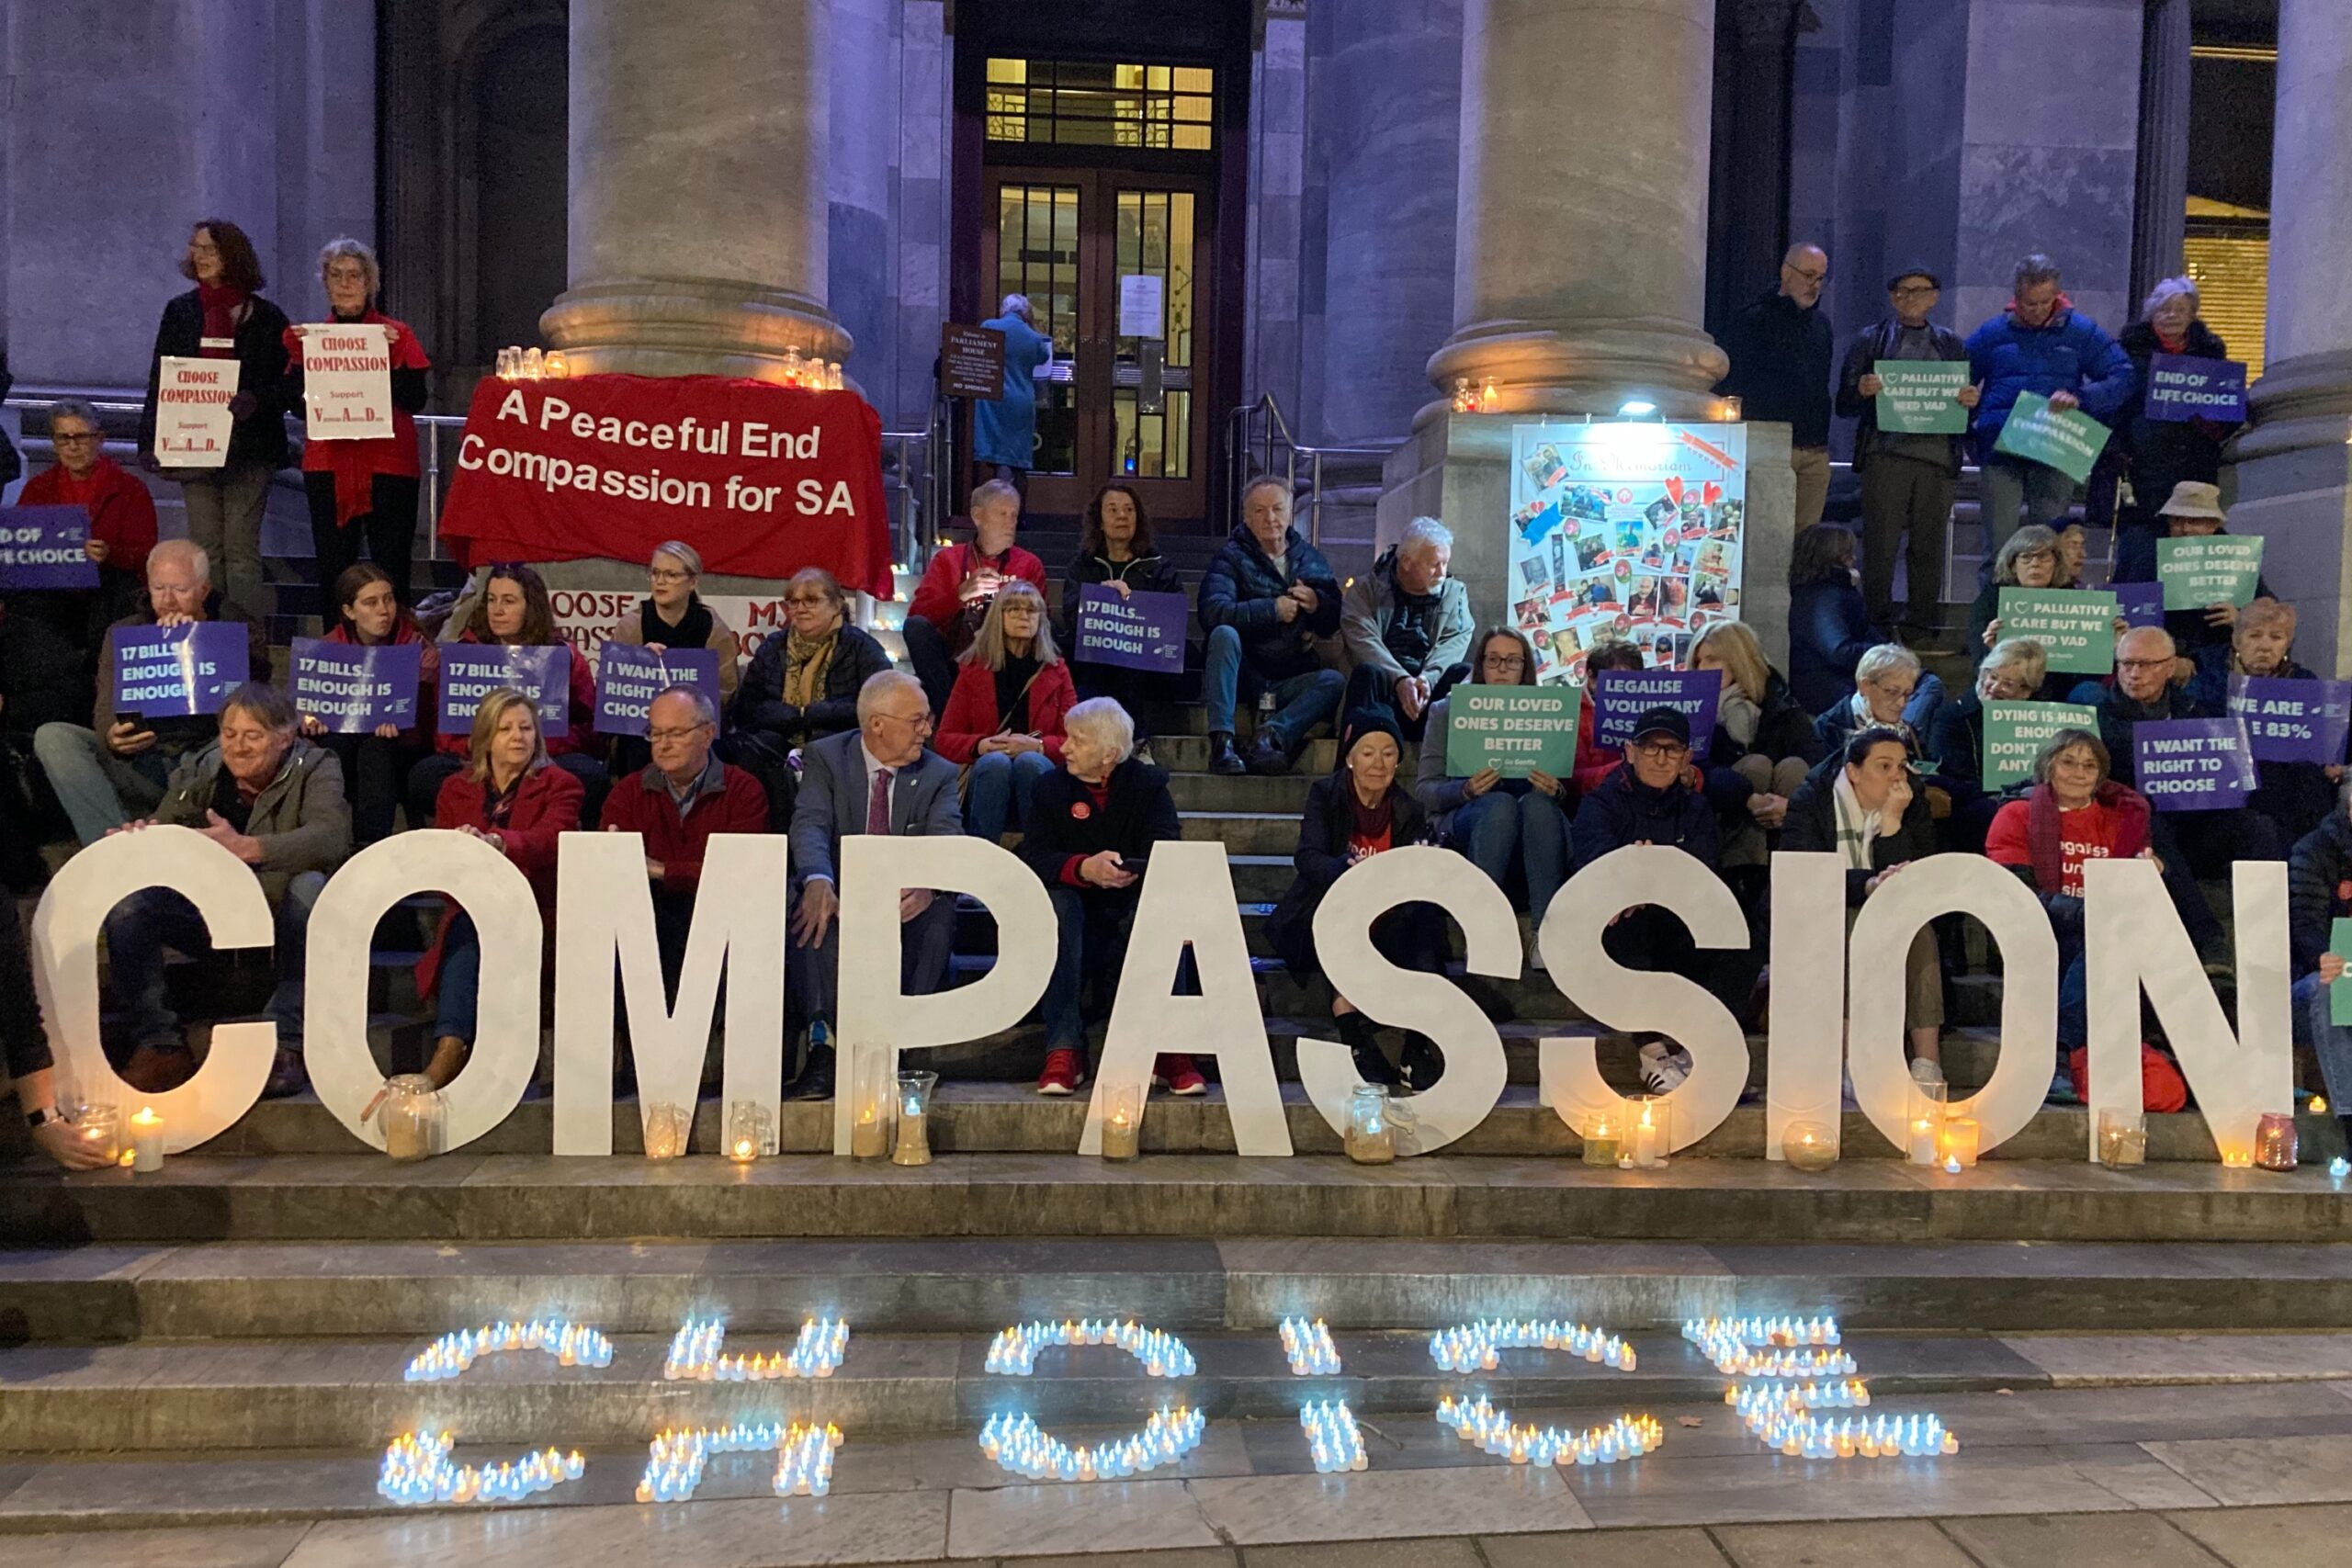 Why has opposition to euthanasia crumbled?